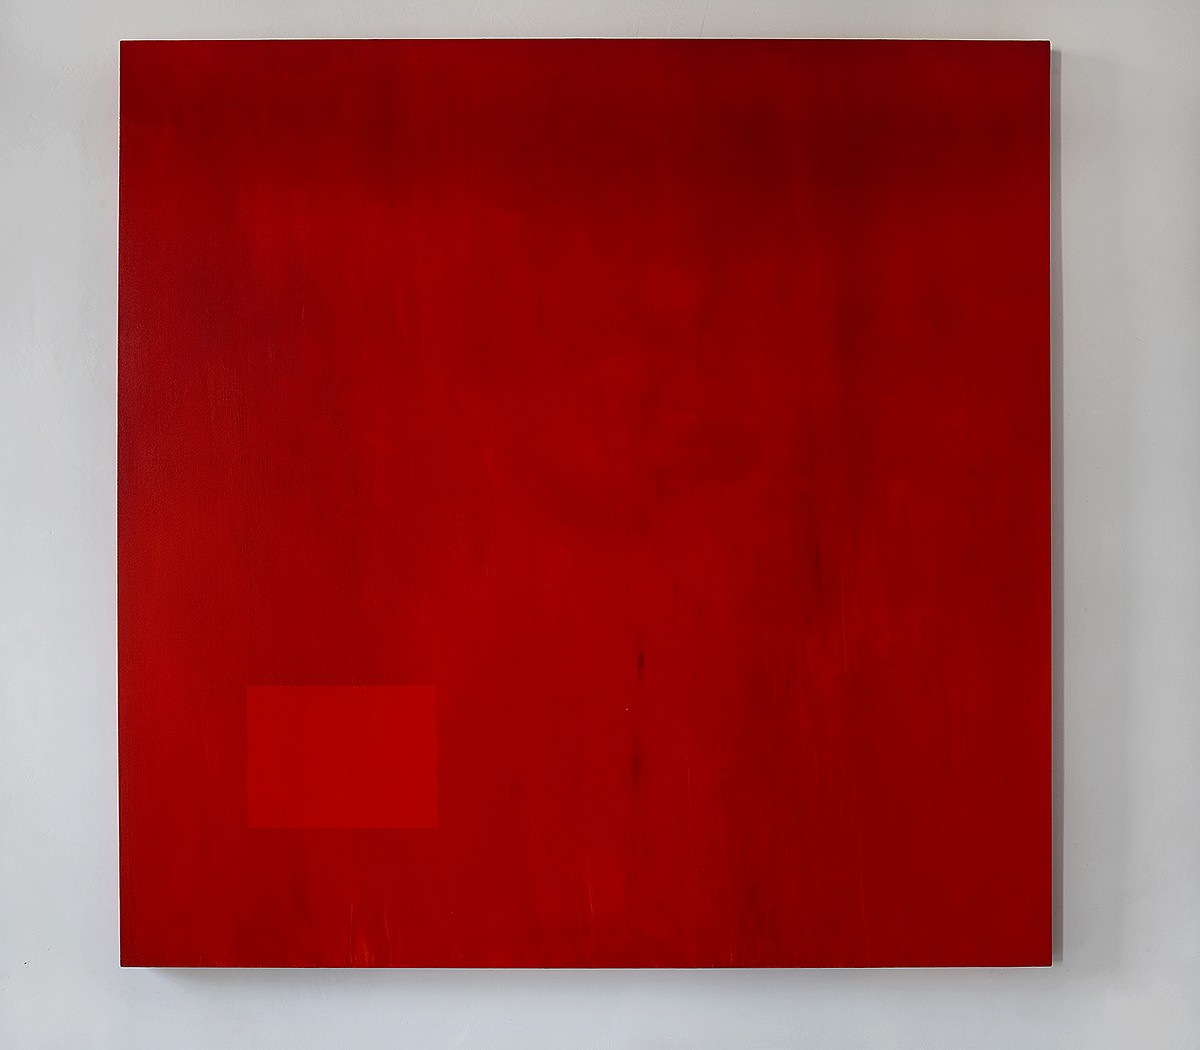 'Red Map I', 2011 Acrylic paint, mixed media on canvas 78.5 x 78.5 in.